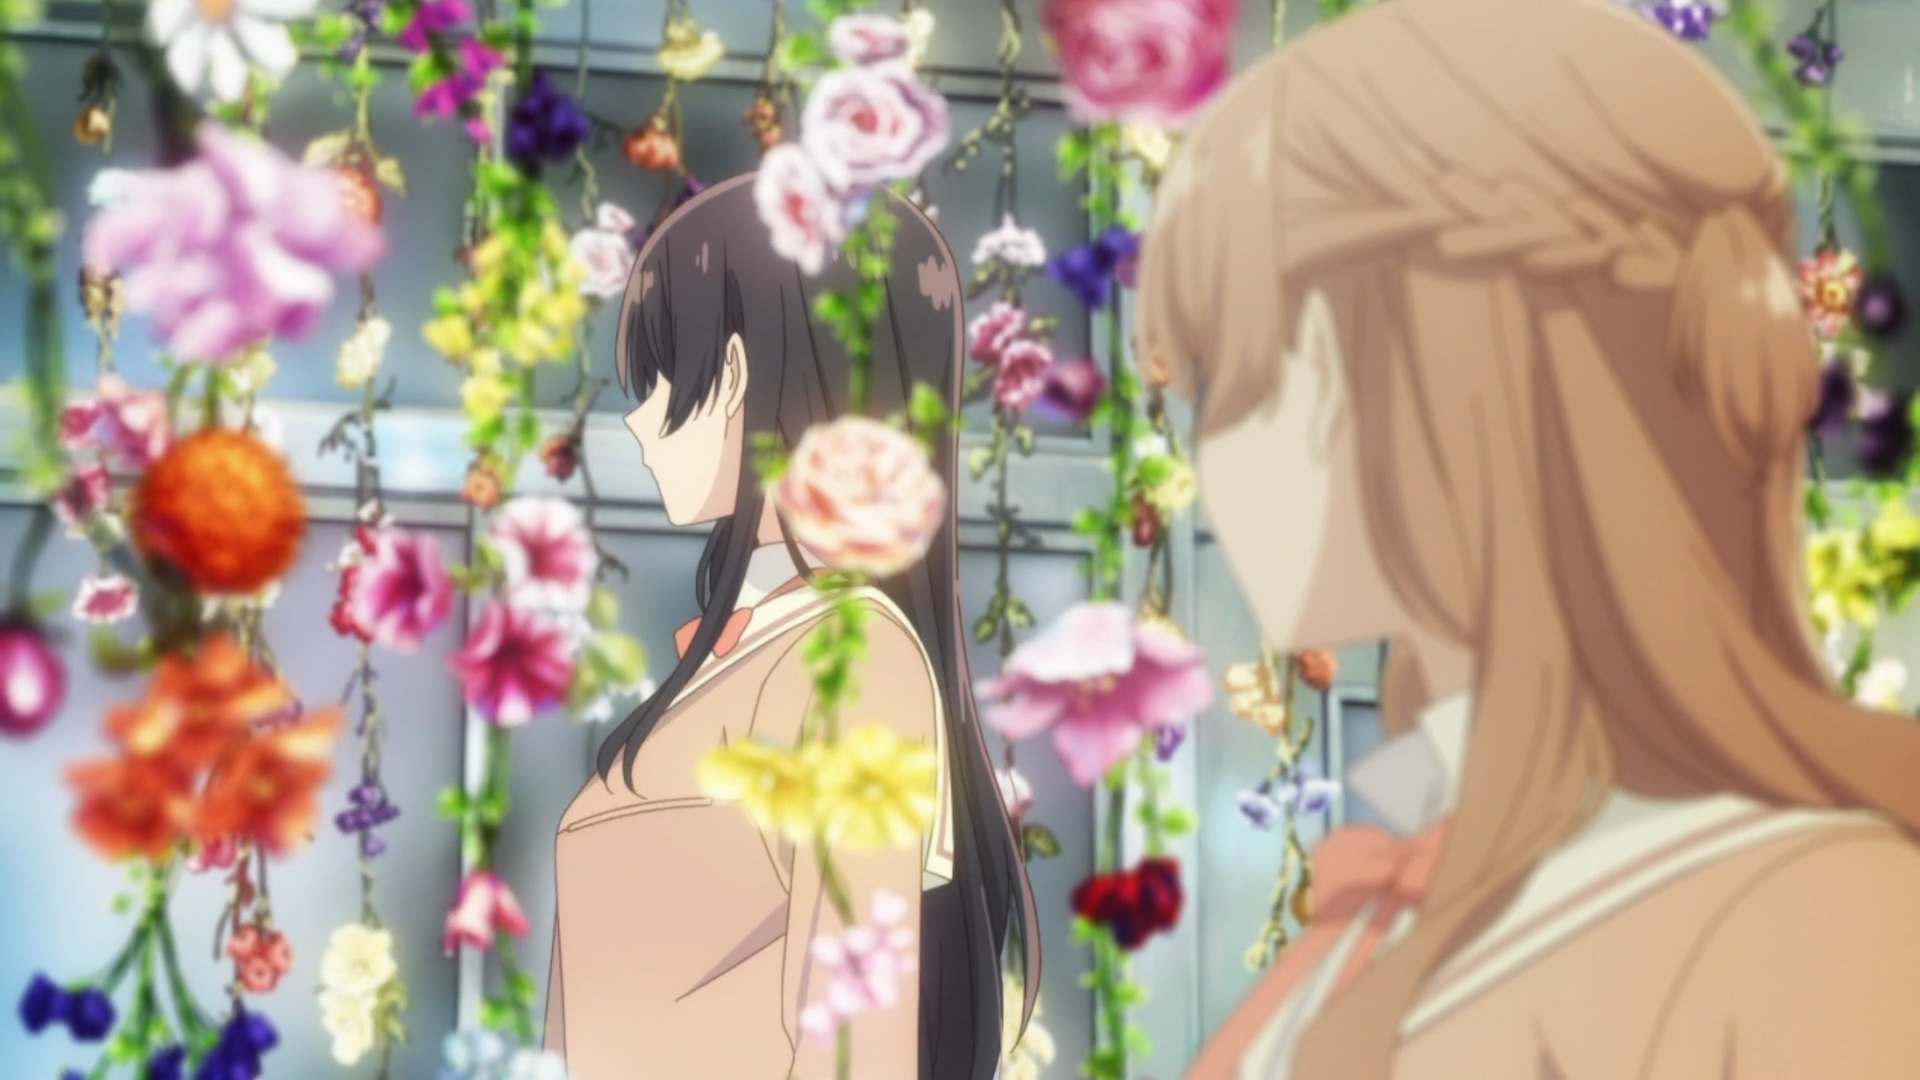 Sayaka staring at Touko's back through a curtain of hanging flowers